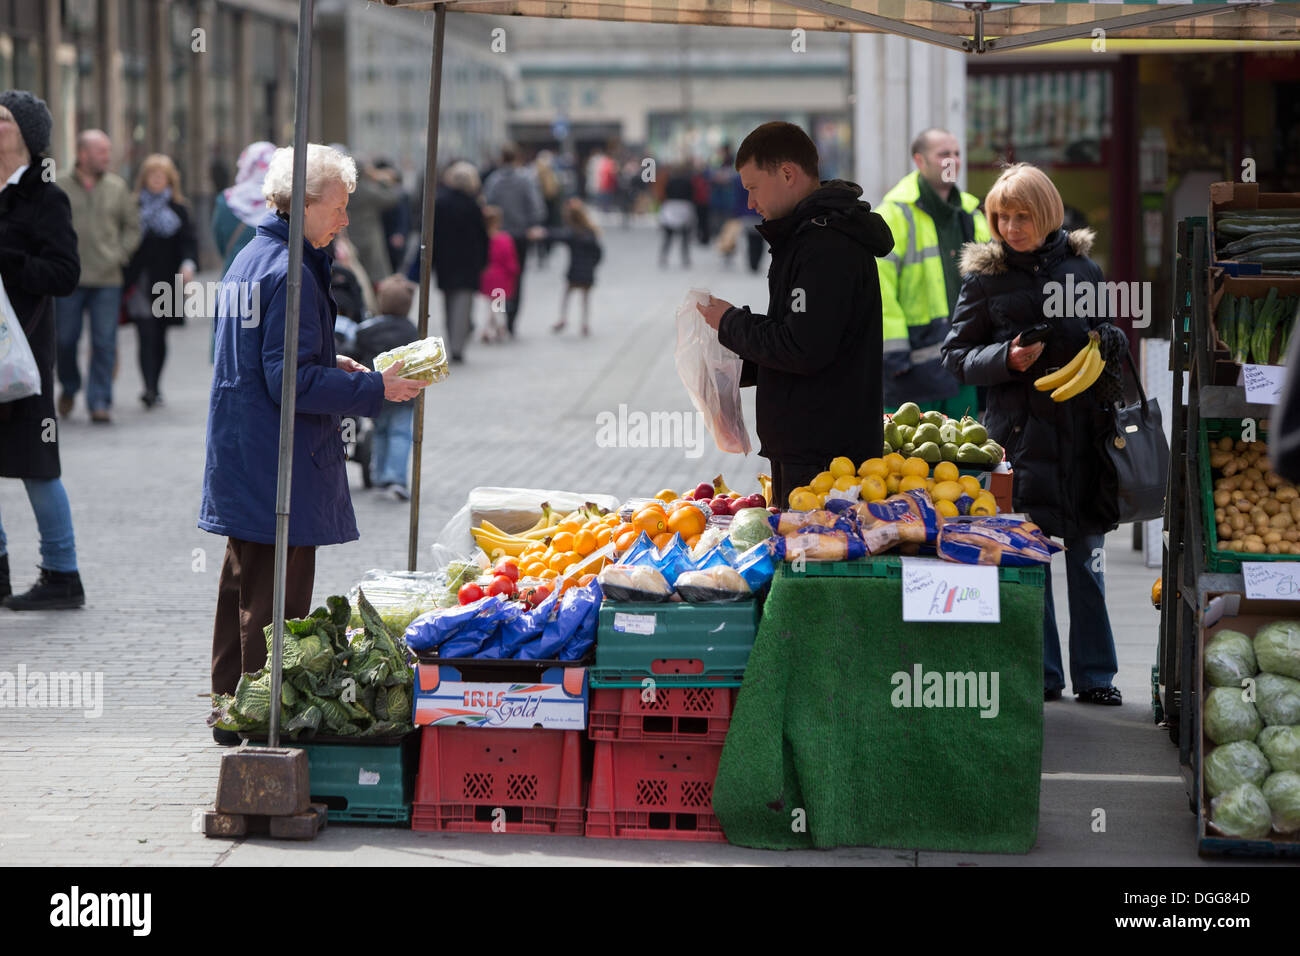 Fruit and vegetable market trader in Liverpool city centre - Stock Image